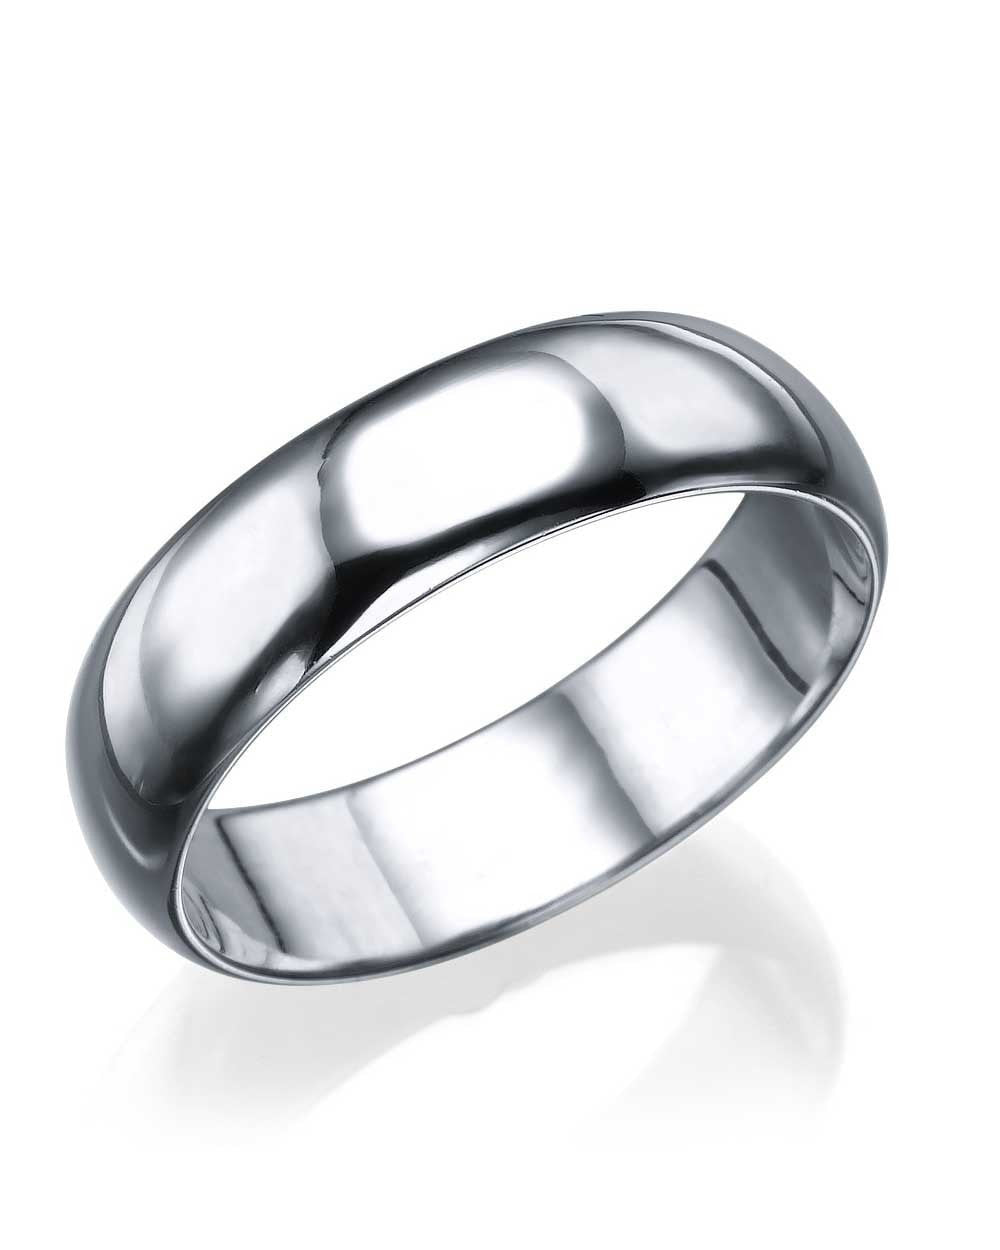 Wedding Rings White Gold Wedding Ring - 5.6mm Rounded Plain Band